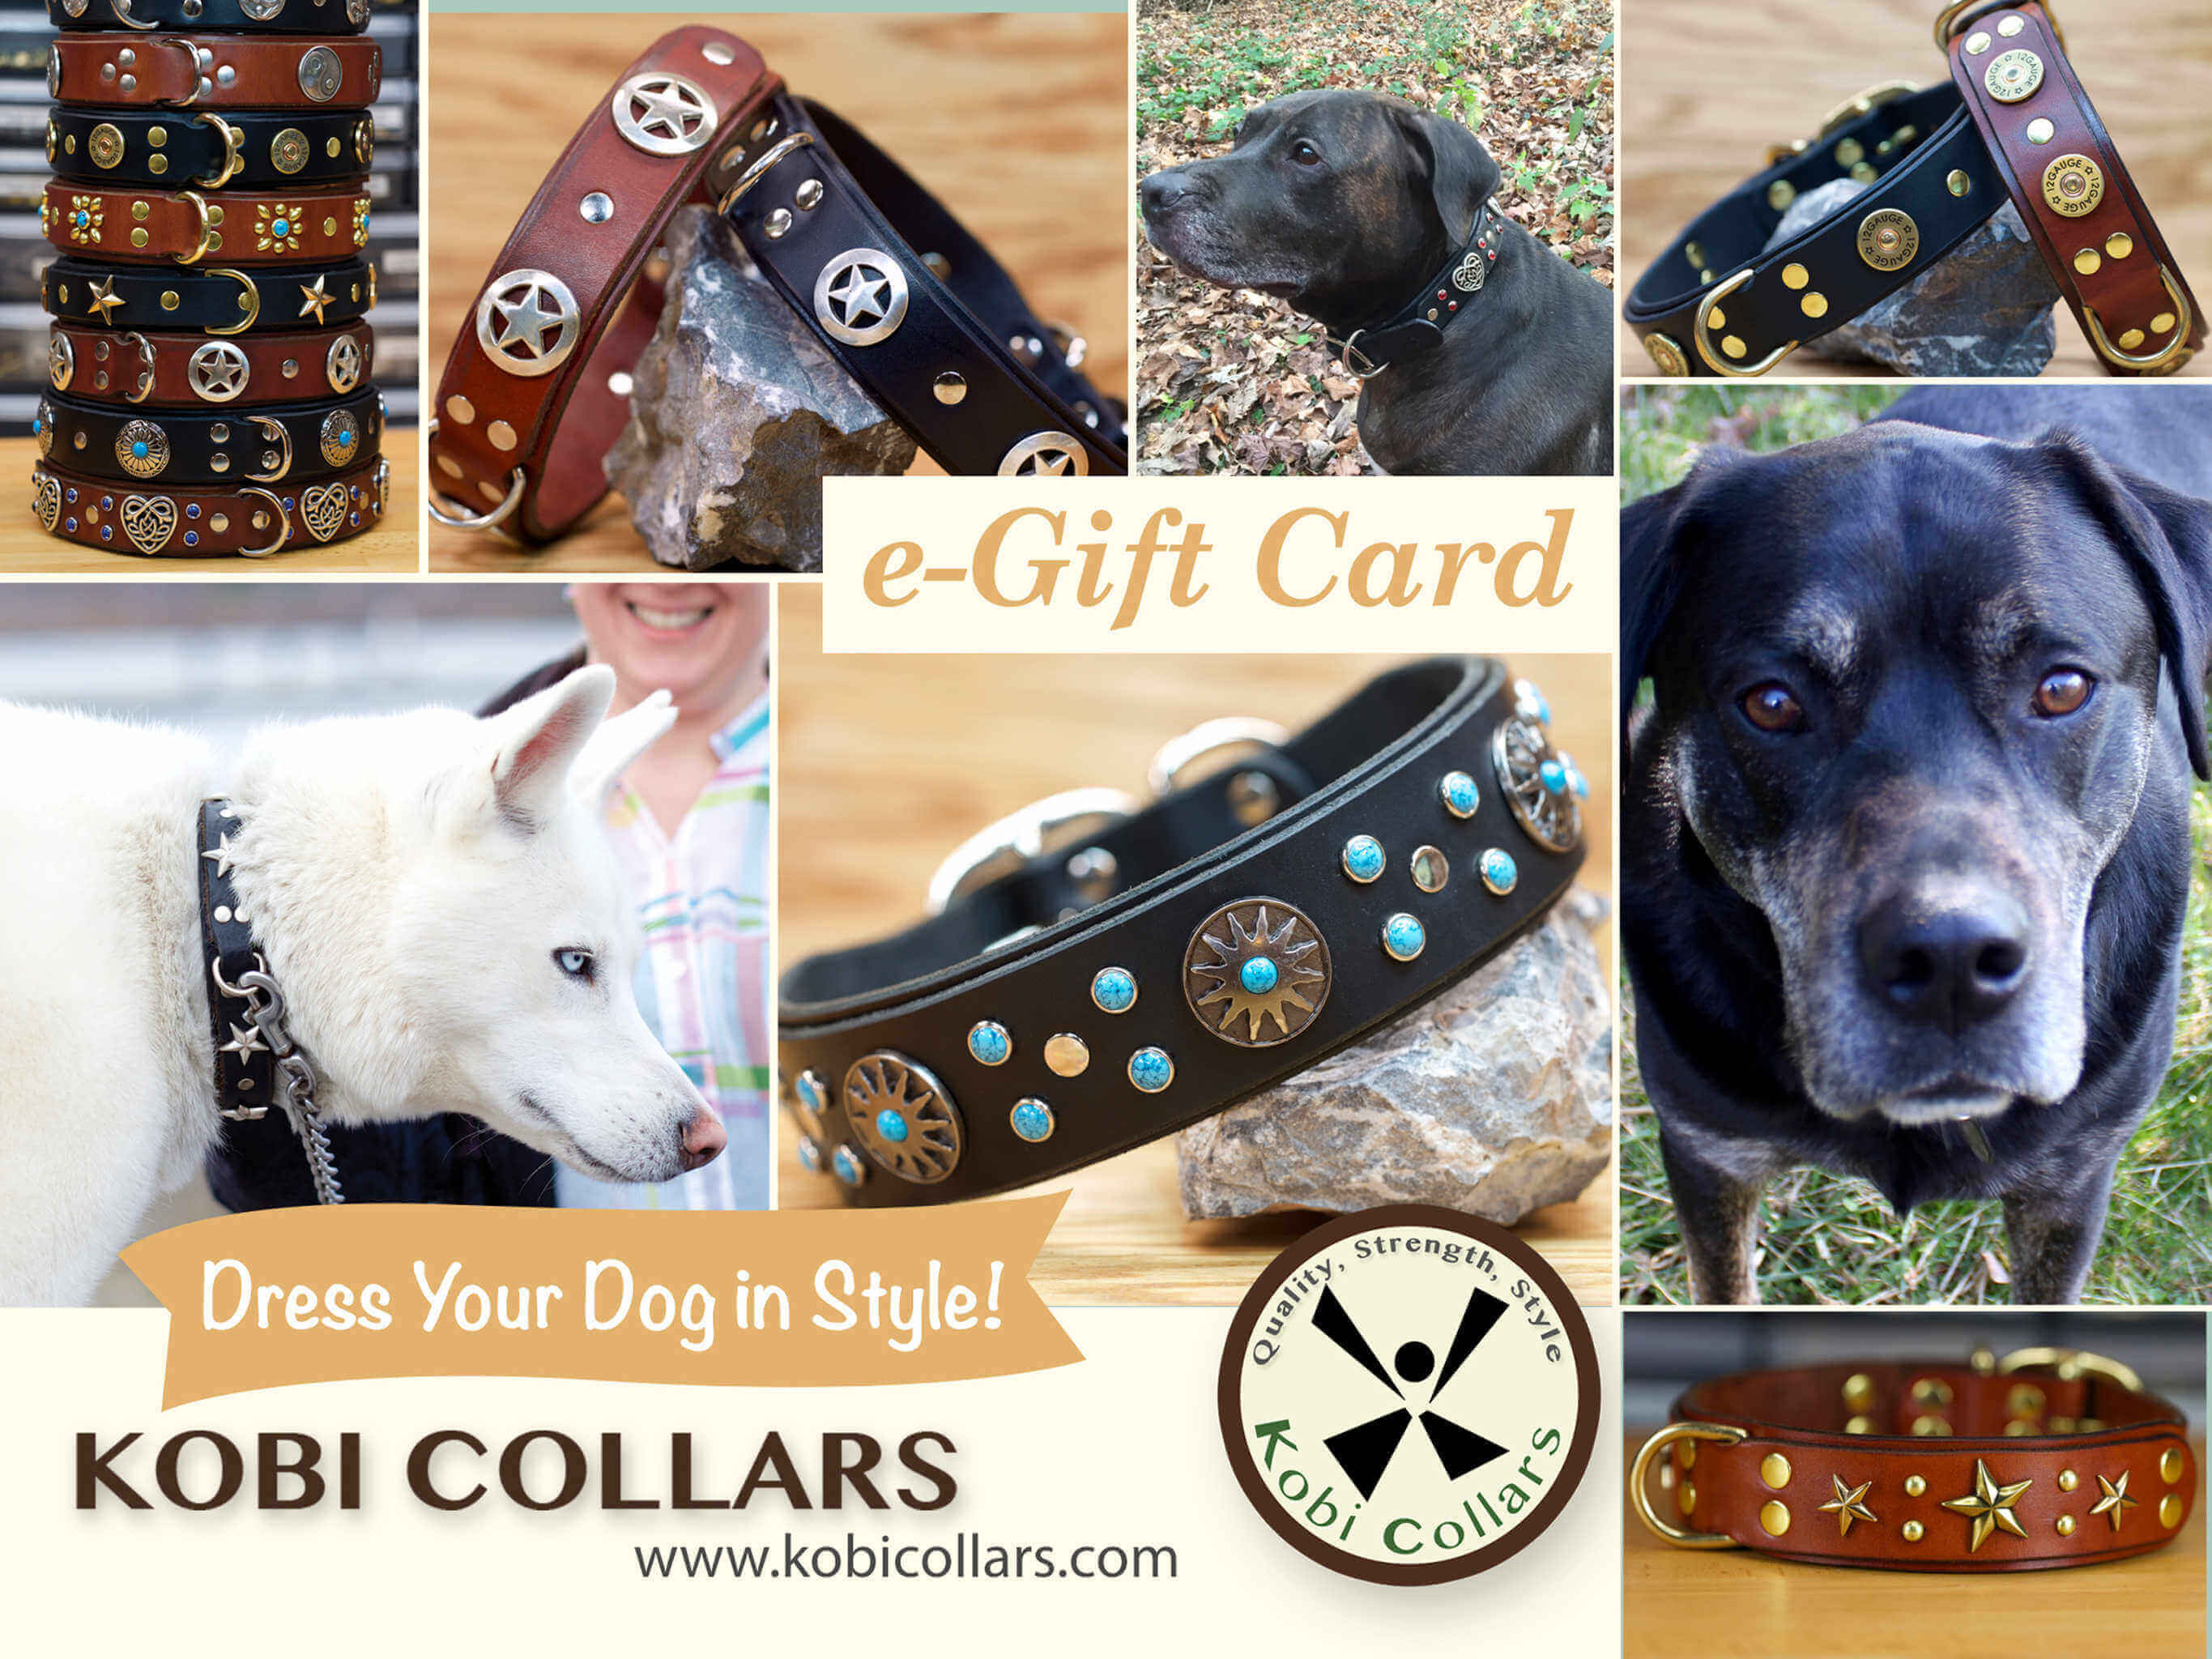 Kobi Collars Gift Card